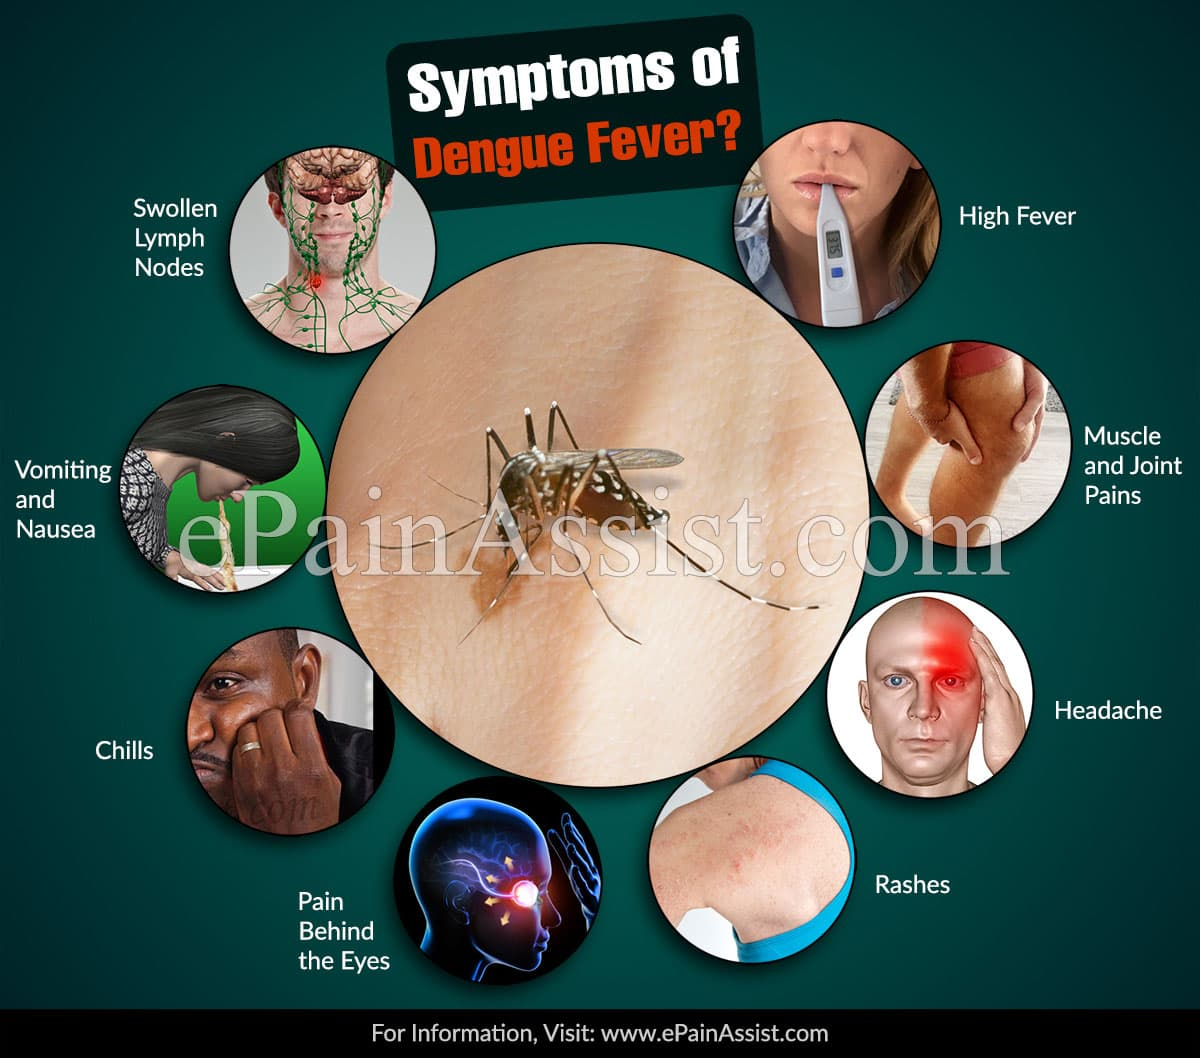 What are the Signs & Symptoms of Dengue Fever?